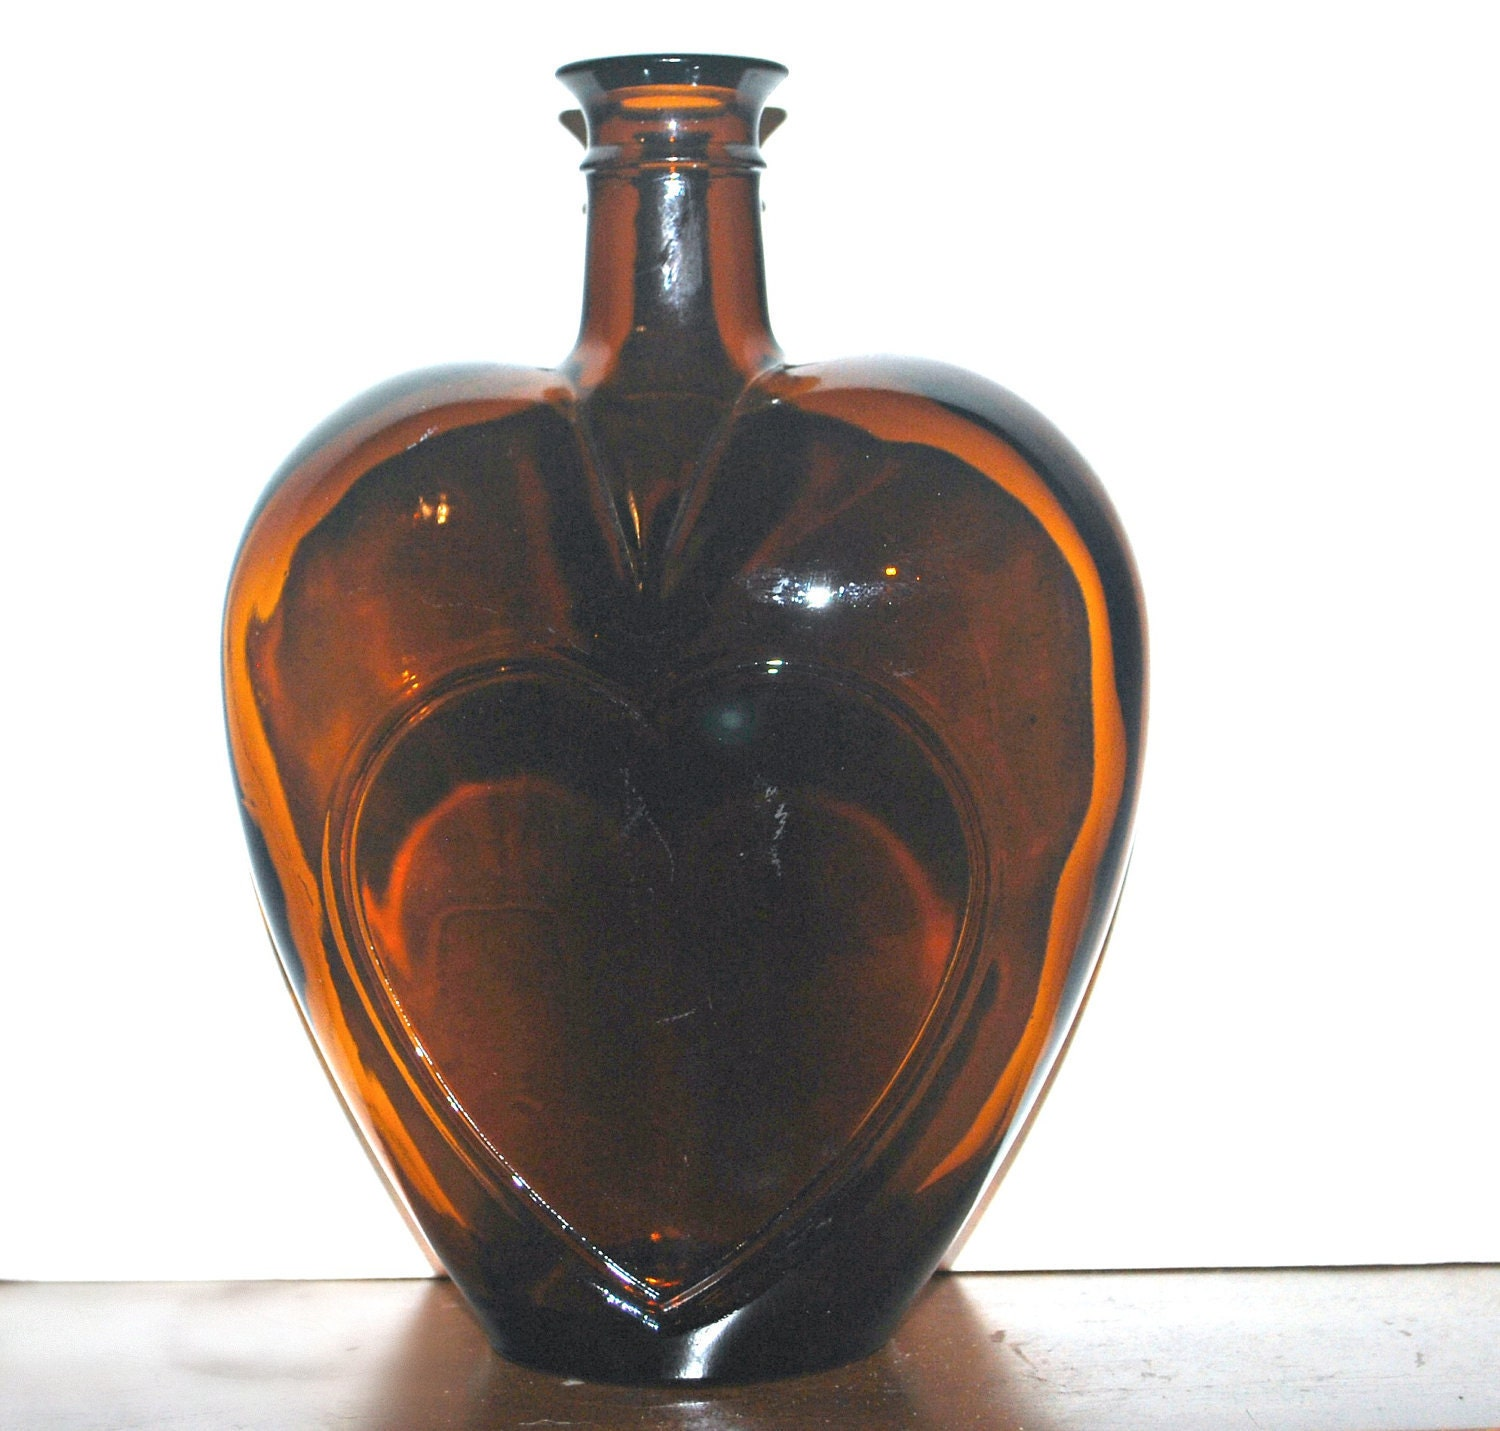 Vintage Paul Masson Heart Shaped Bottle By Capecodgypsy On